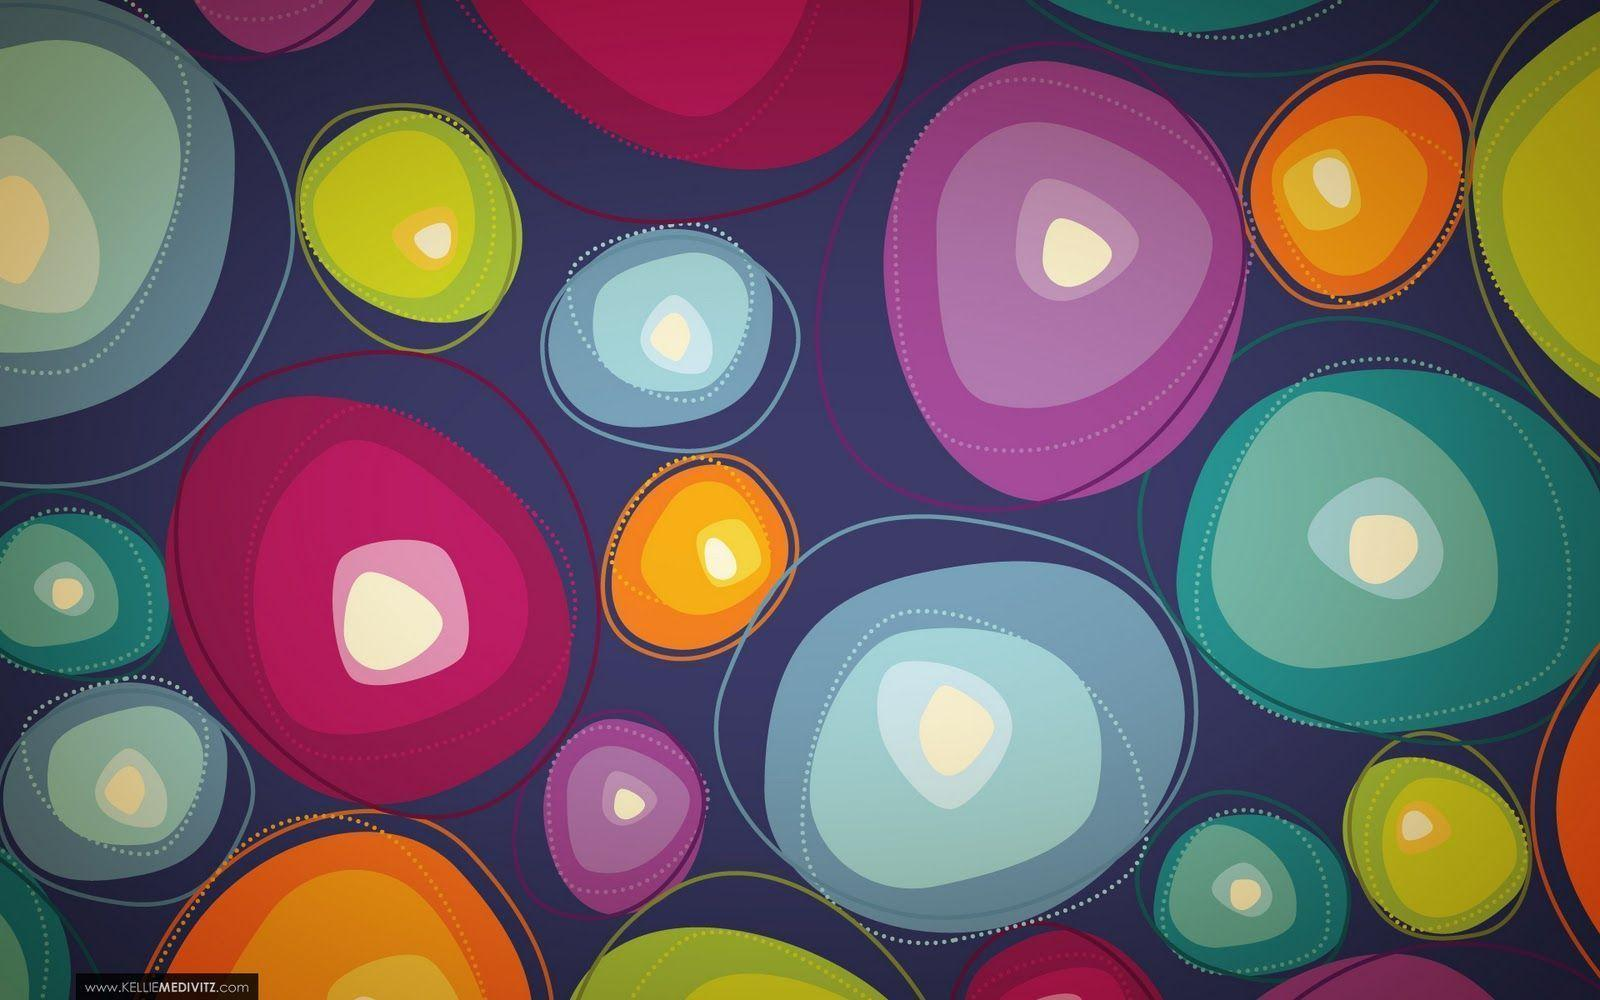 Fun Backgrounds Image - Wallpaper Cave